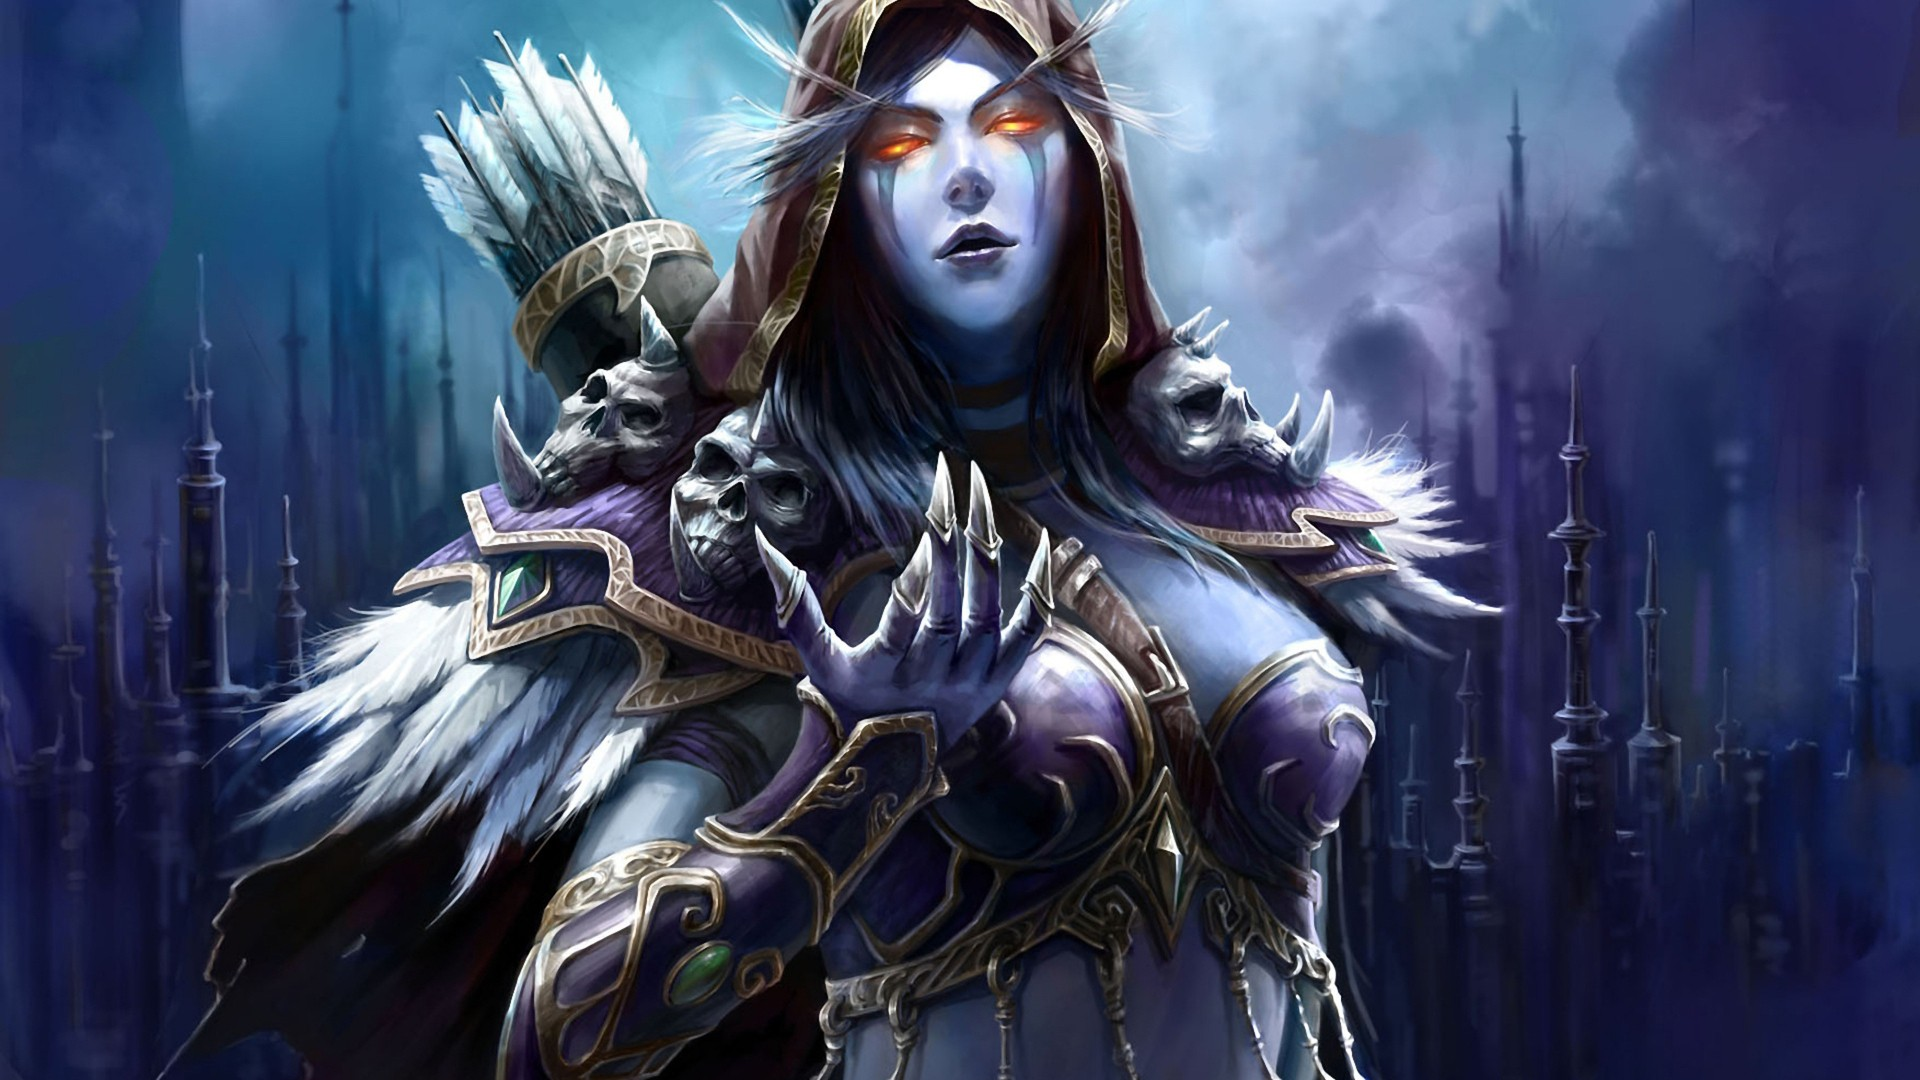 Free World Of Warcraft Wallpaper Src World Of Warcraft Wow Sylvanas 2911026 Hd Wallpaper Backgrounds Download